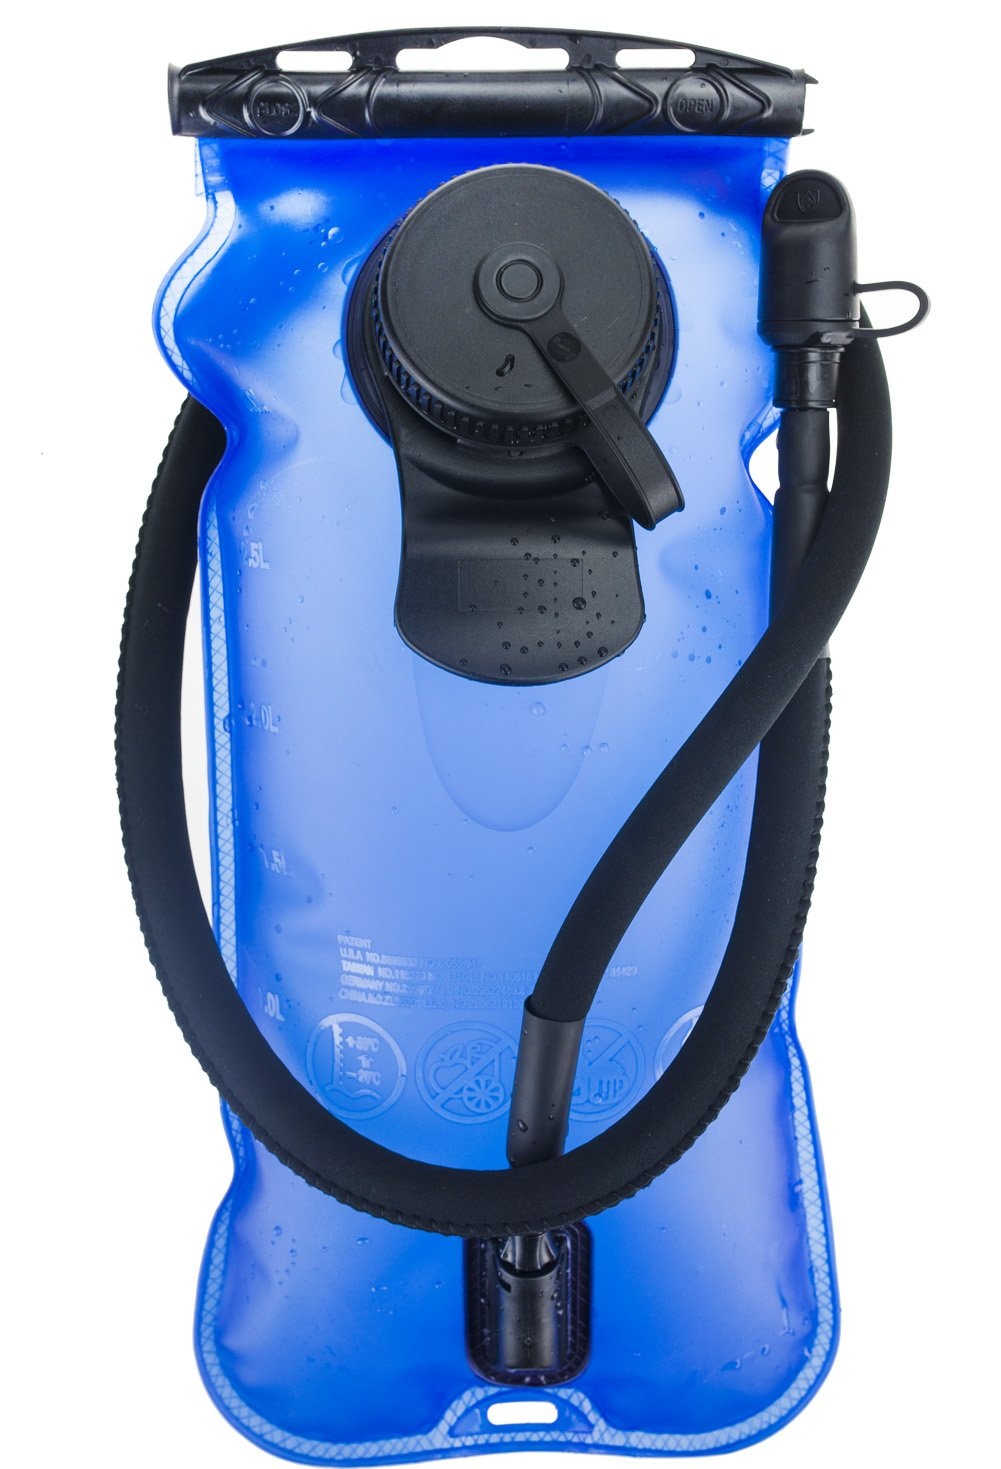 WACOOL 3L 3Liter 100oz BPA Free EVA Hydration Pack Bladder, Leakproof Water Reservoir (3 Liter Bladder Blue)